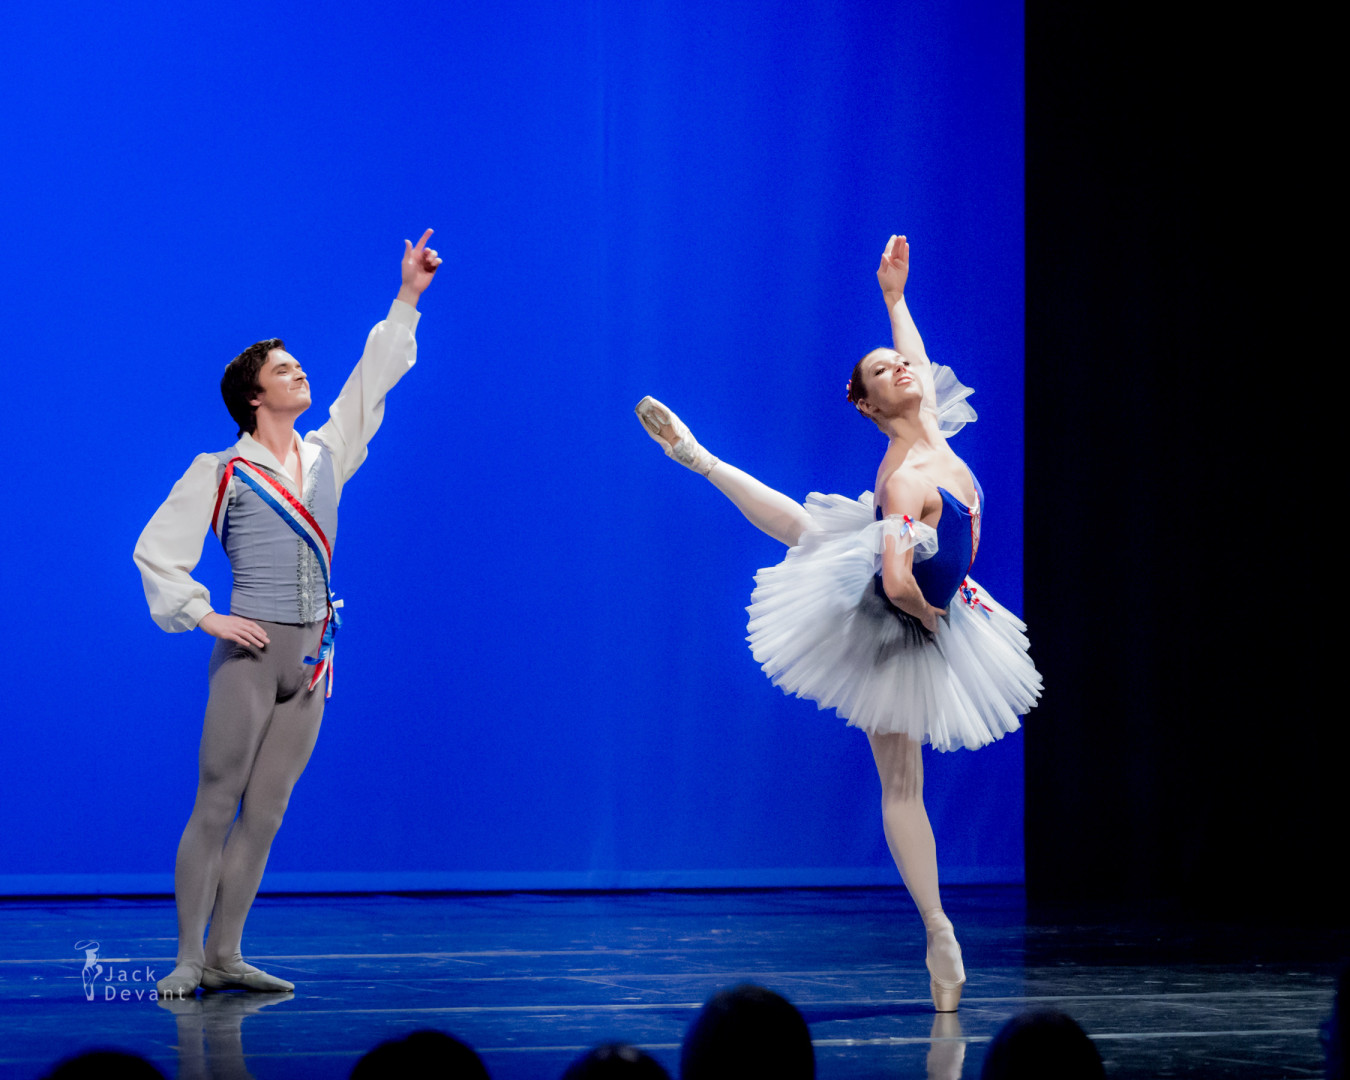 Andrey Pisarev and Maria Mishina in Flammes de Paris